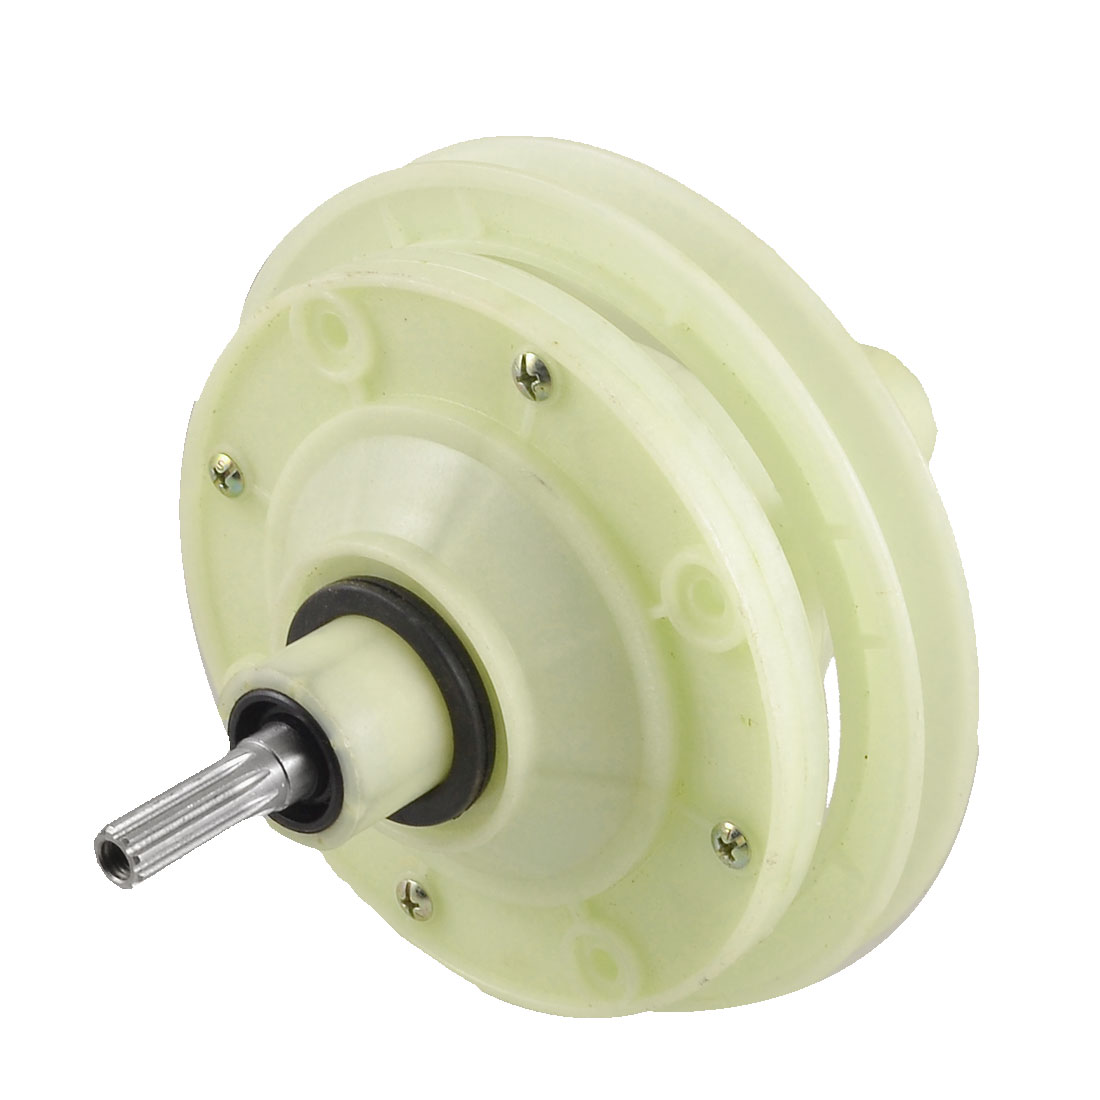 Washing Machine Part 148mm Dia 10 Teeth Speed Gear Reducer Beige